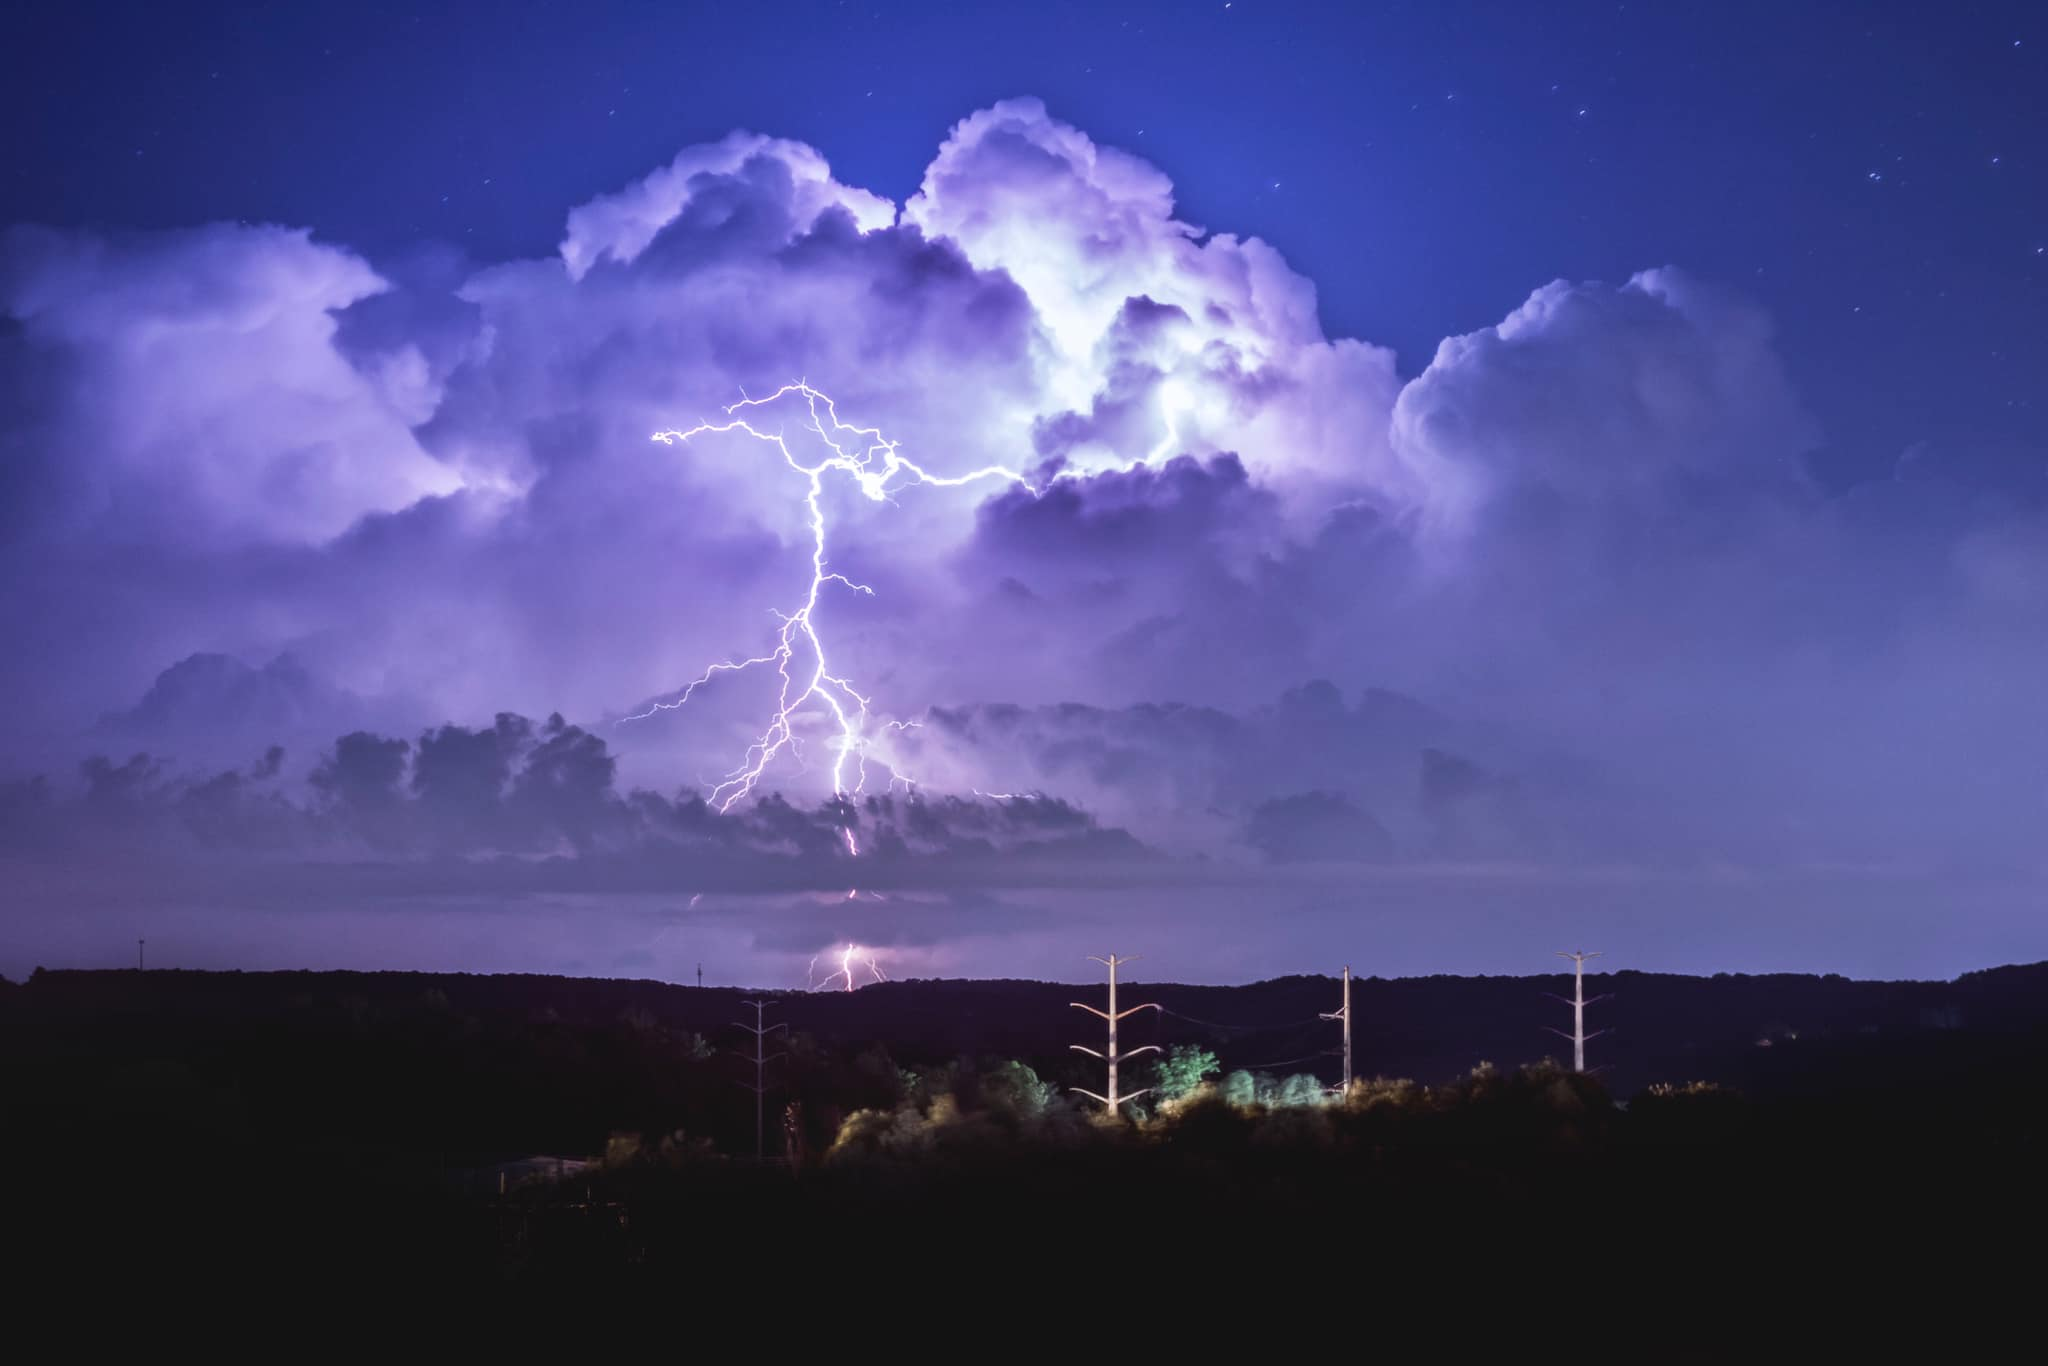 Lightning Severe Weather Dangers To Plague Midwest